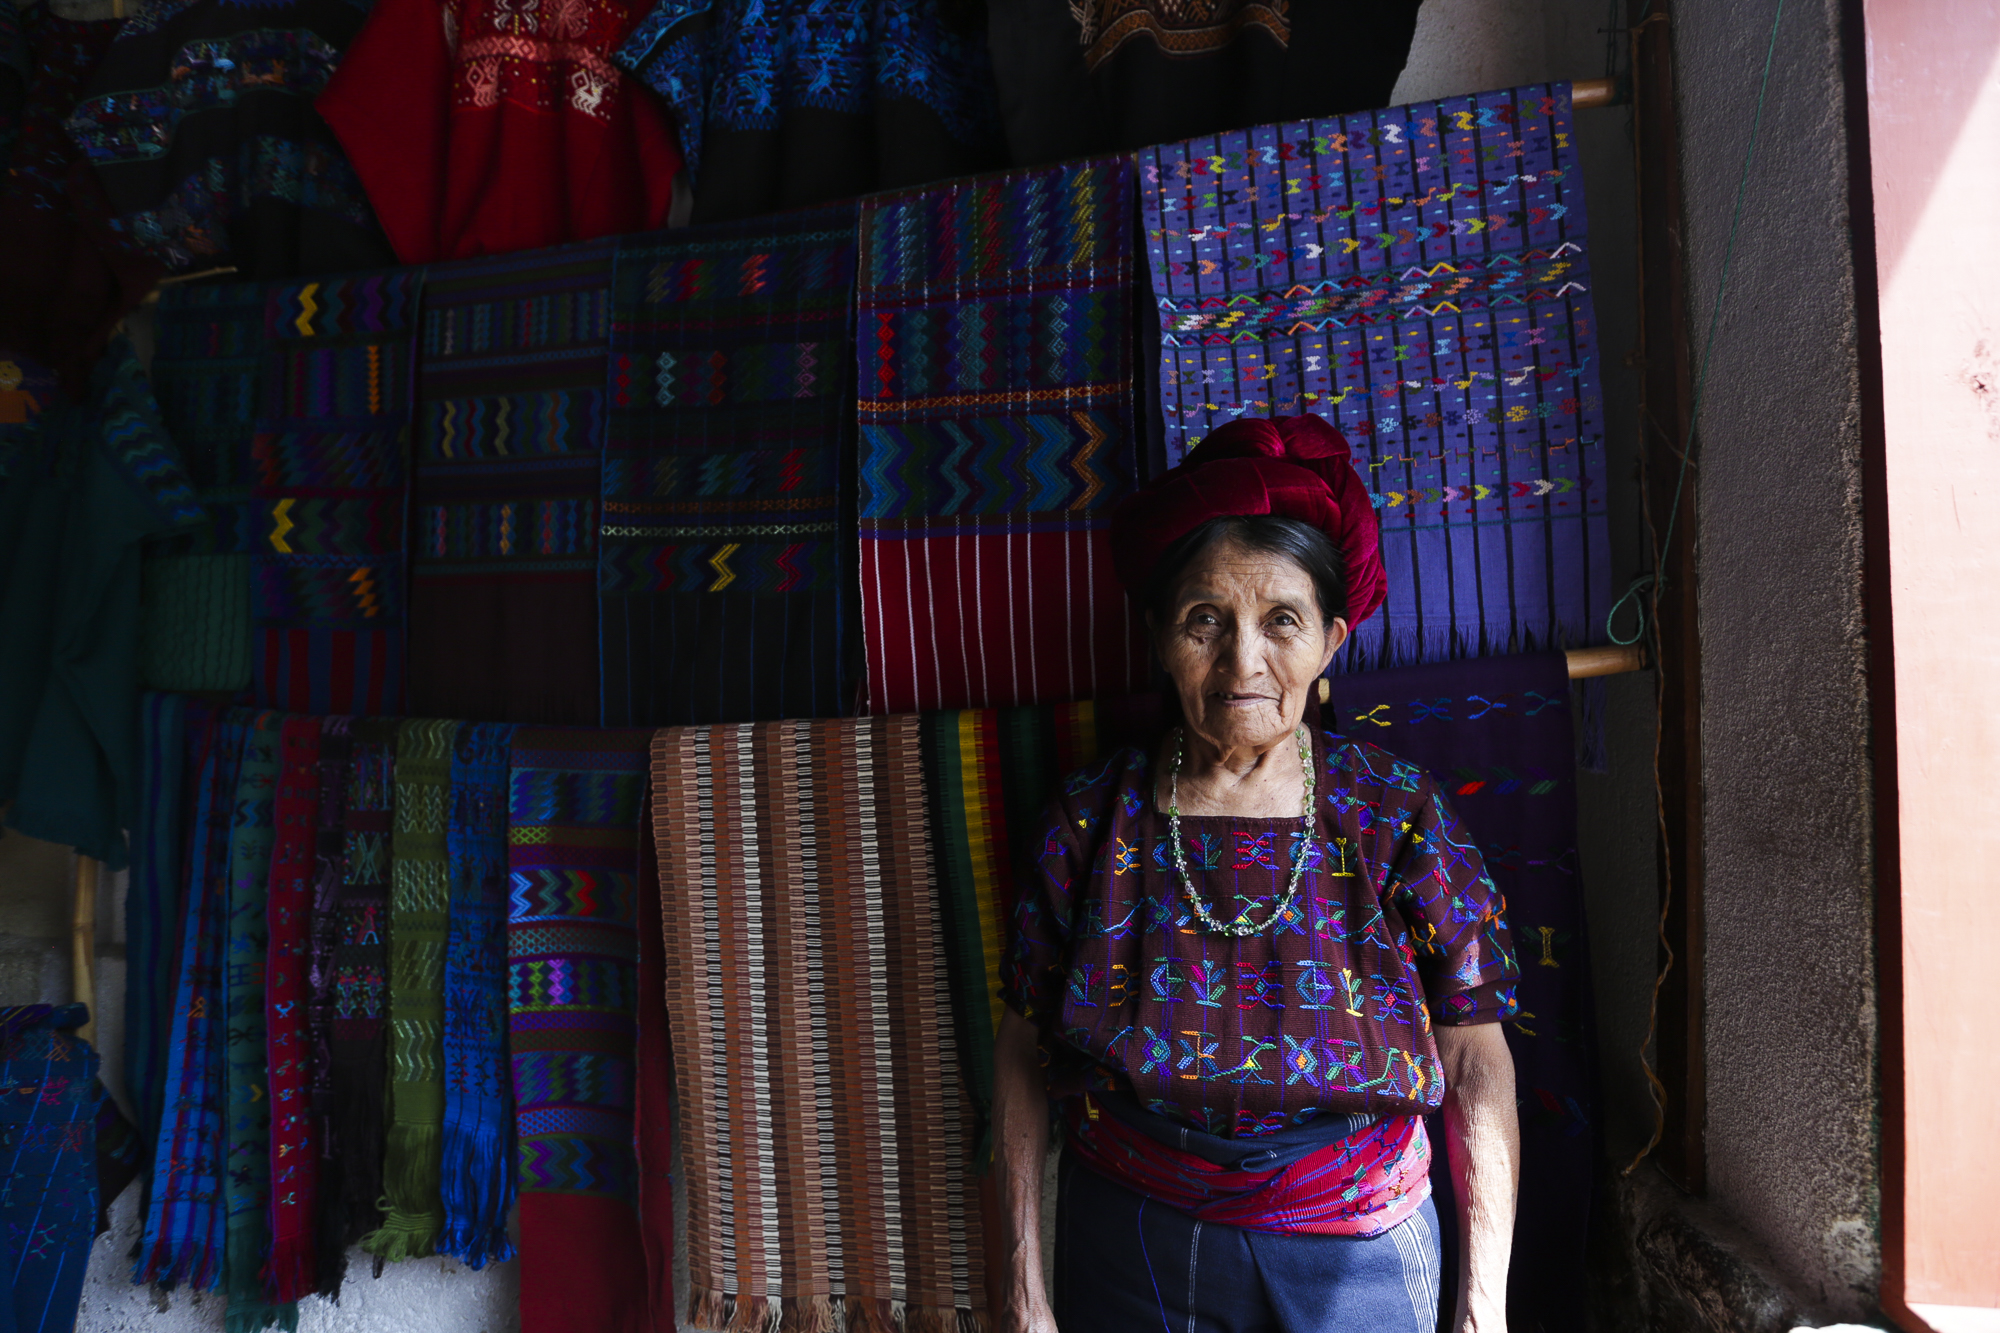 Catorina posses in front of her textiles in San Antonio Palopó, Guatemala, on August 4, 2018. Catorina said that one table cloth can take up to four months to make.